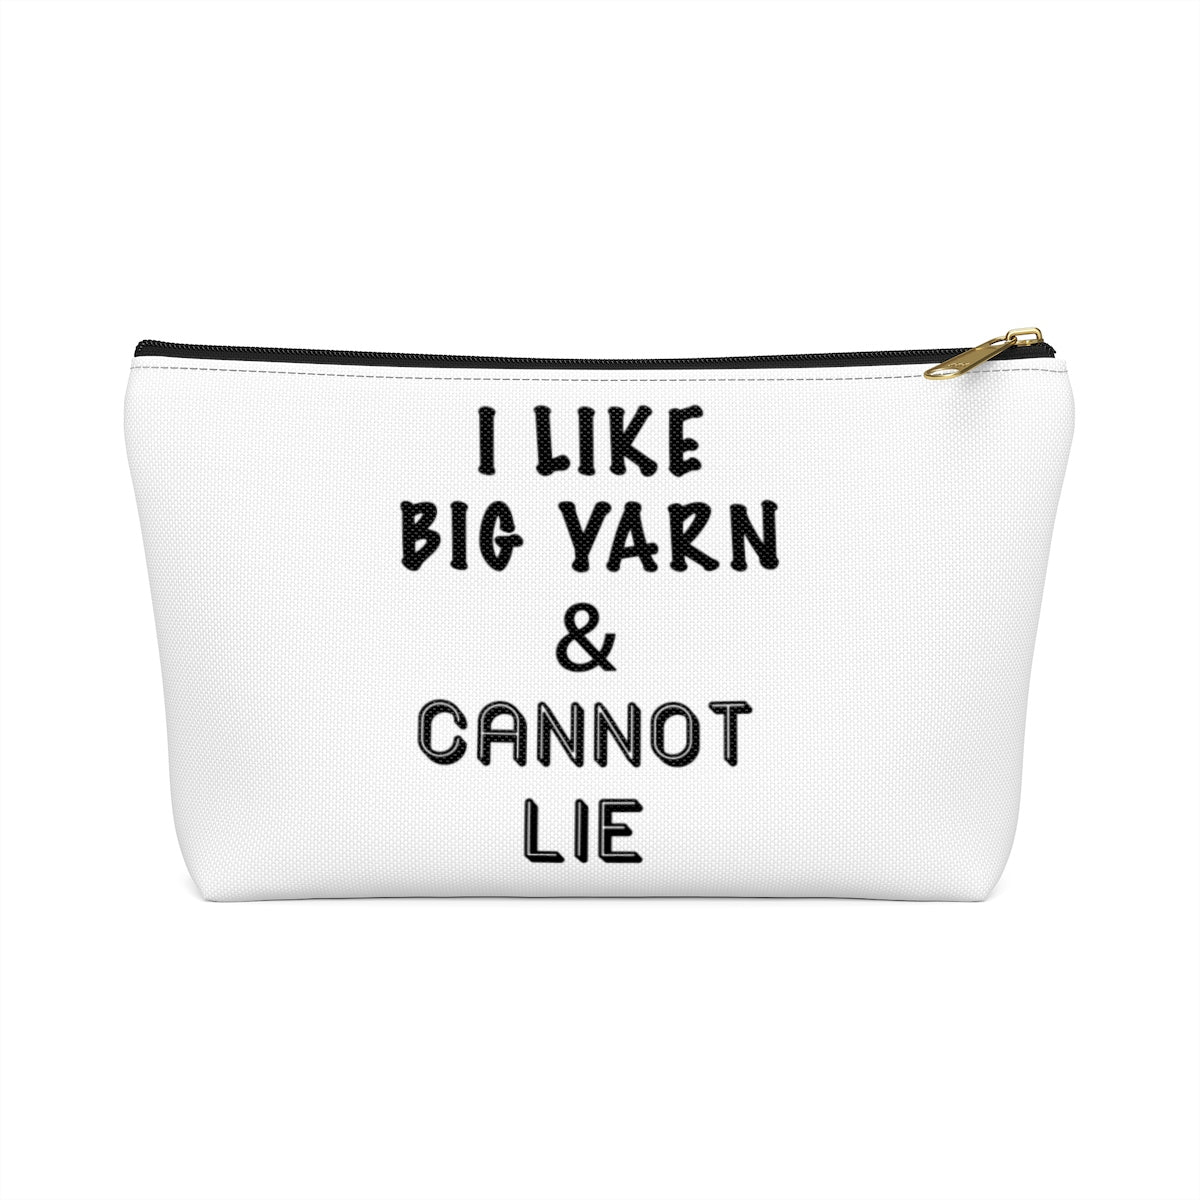 """I Like Big Yarn & Cannot Lie"" - White Accessory Pouch"